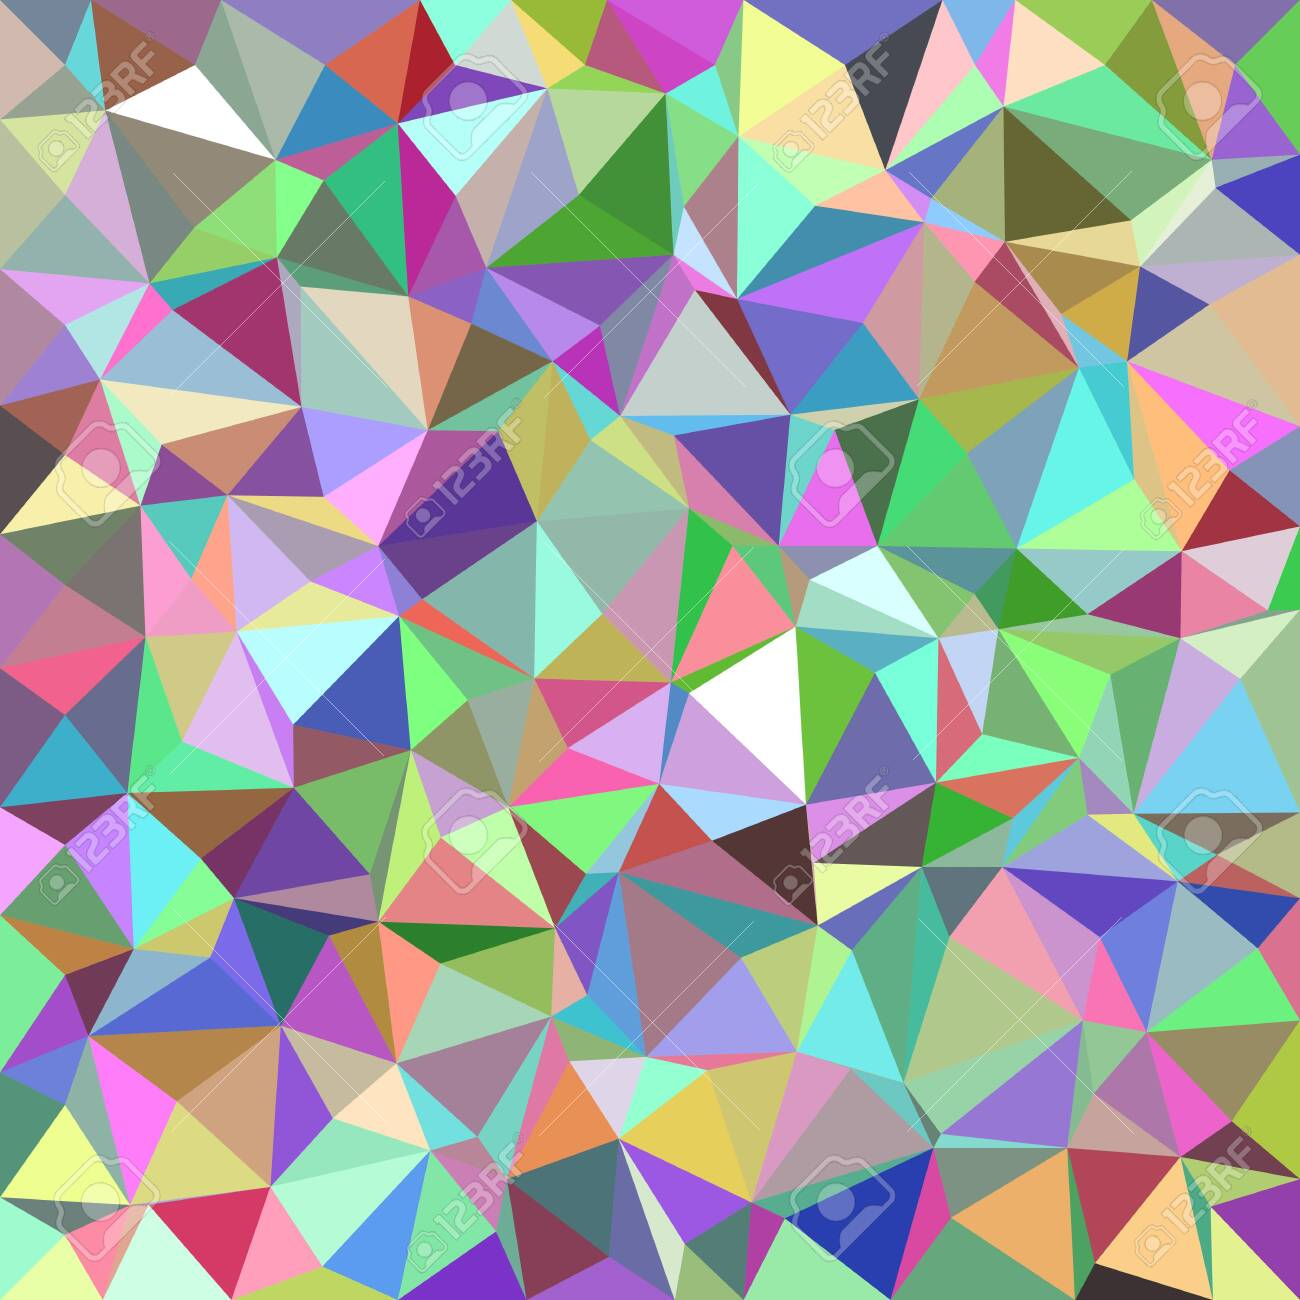 Colorful abstract triangle tile mosaic pattern background - 131383868